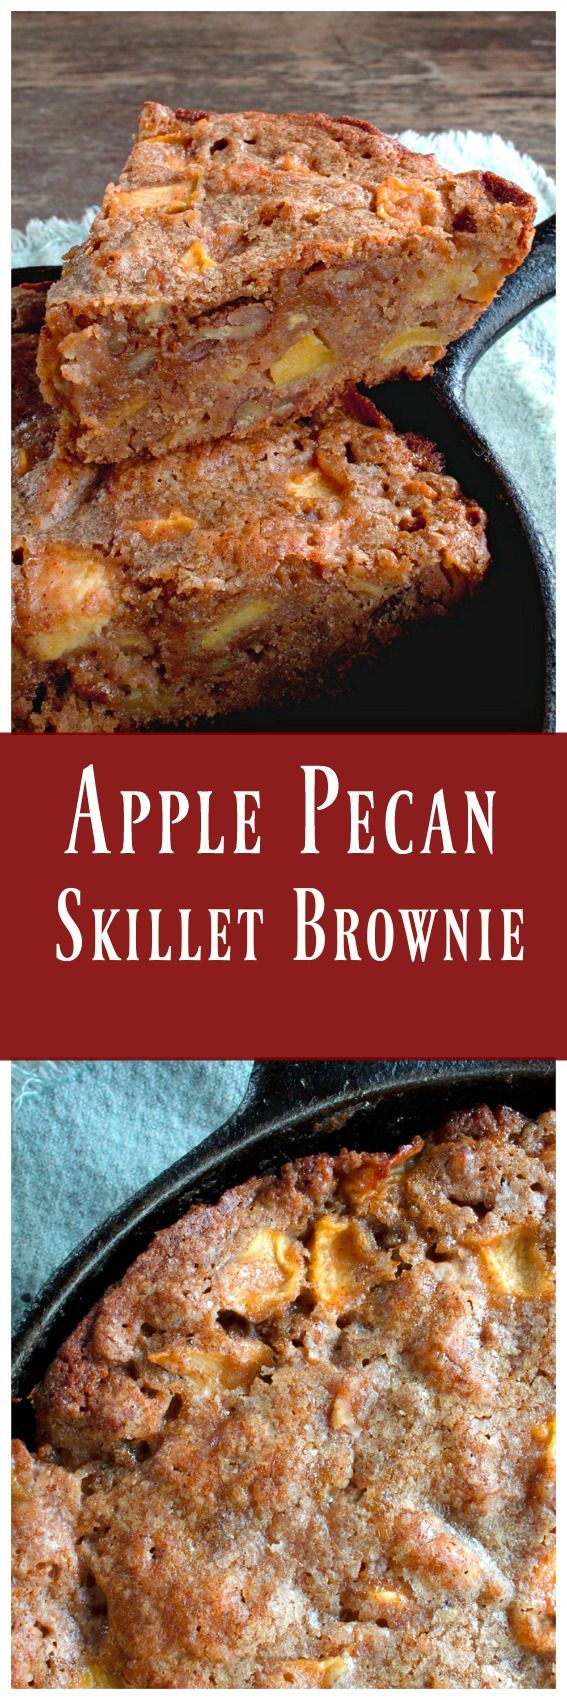 Apple Pecan Skillet Brownie - The soft apples and pecans mingled with warm spices  is everything we love about Fall baking. via @https://www.pinterest.com/BunnysWarmOven/bunnys-warm-oven/